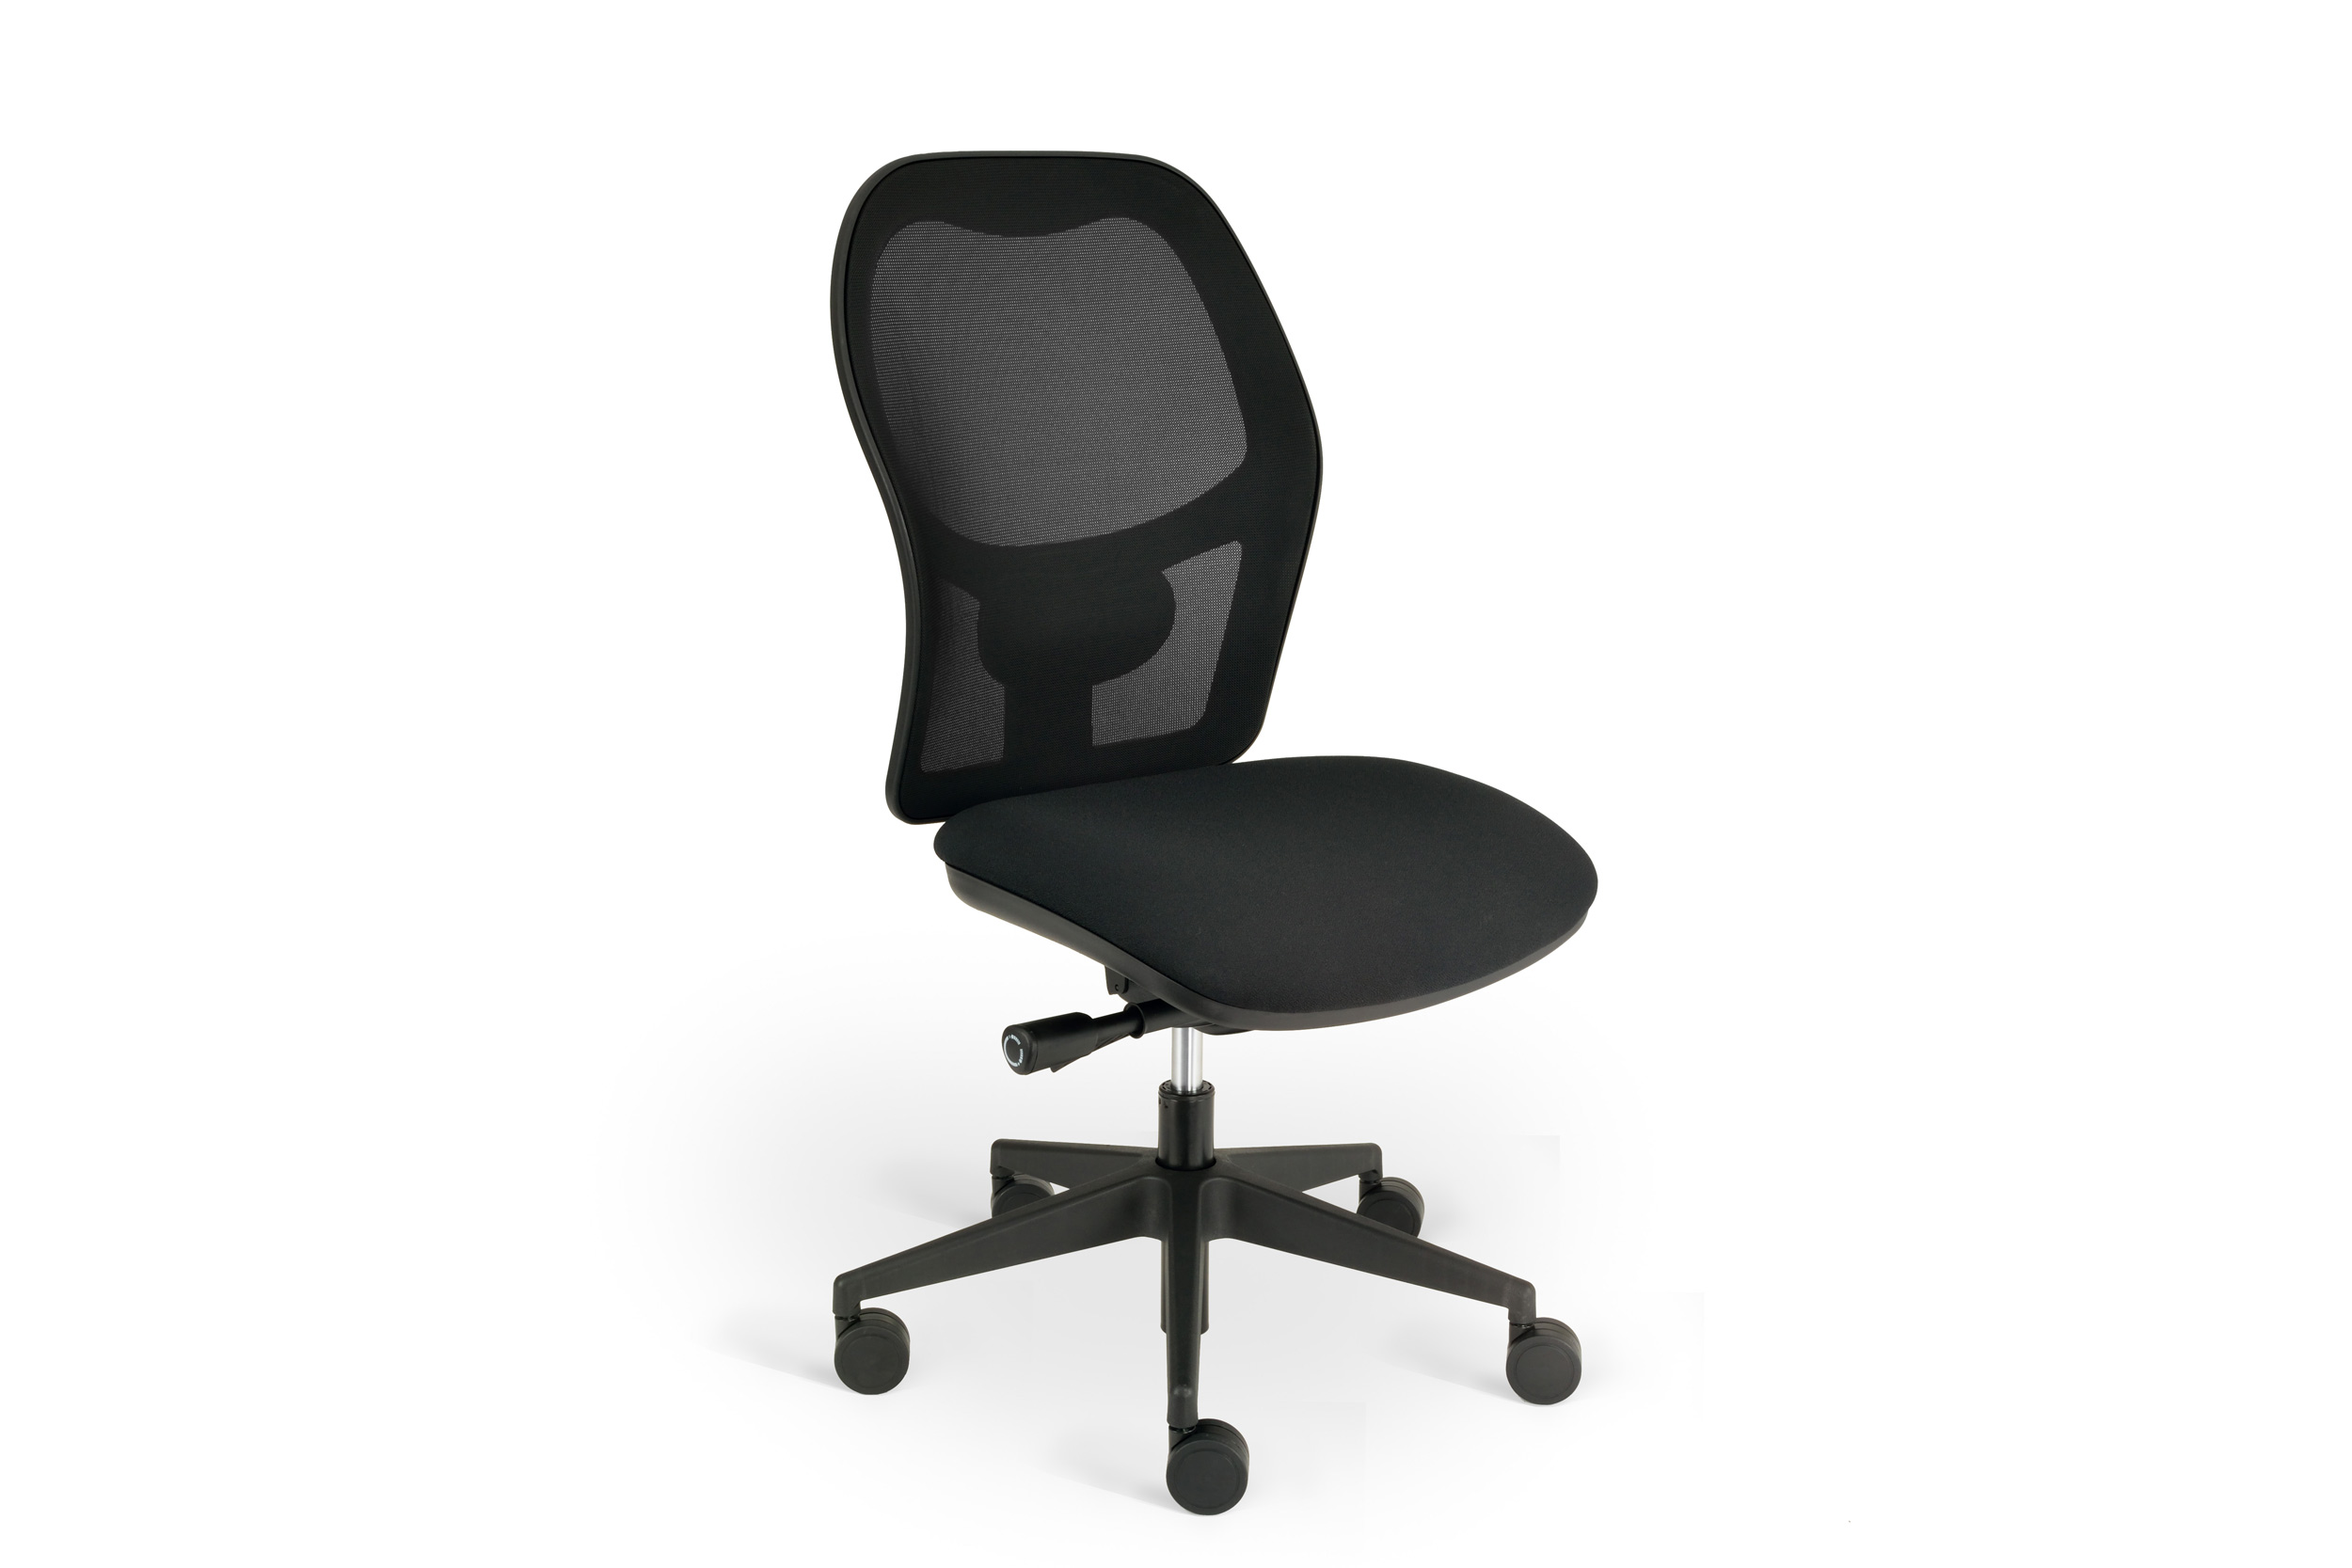 Categories: Seating, Task Tags: Computer Chair, Desk Chair, Office Chair,  Seating